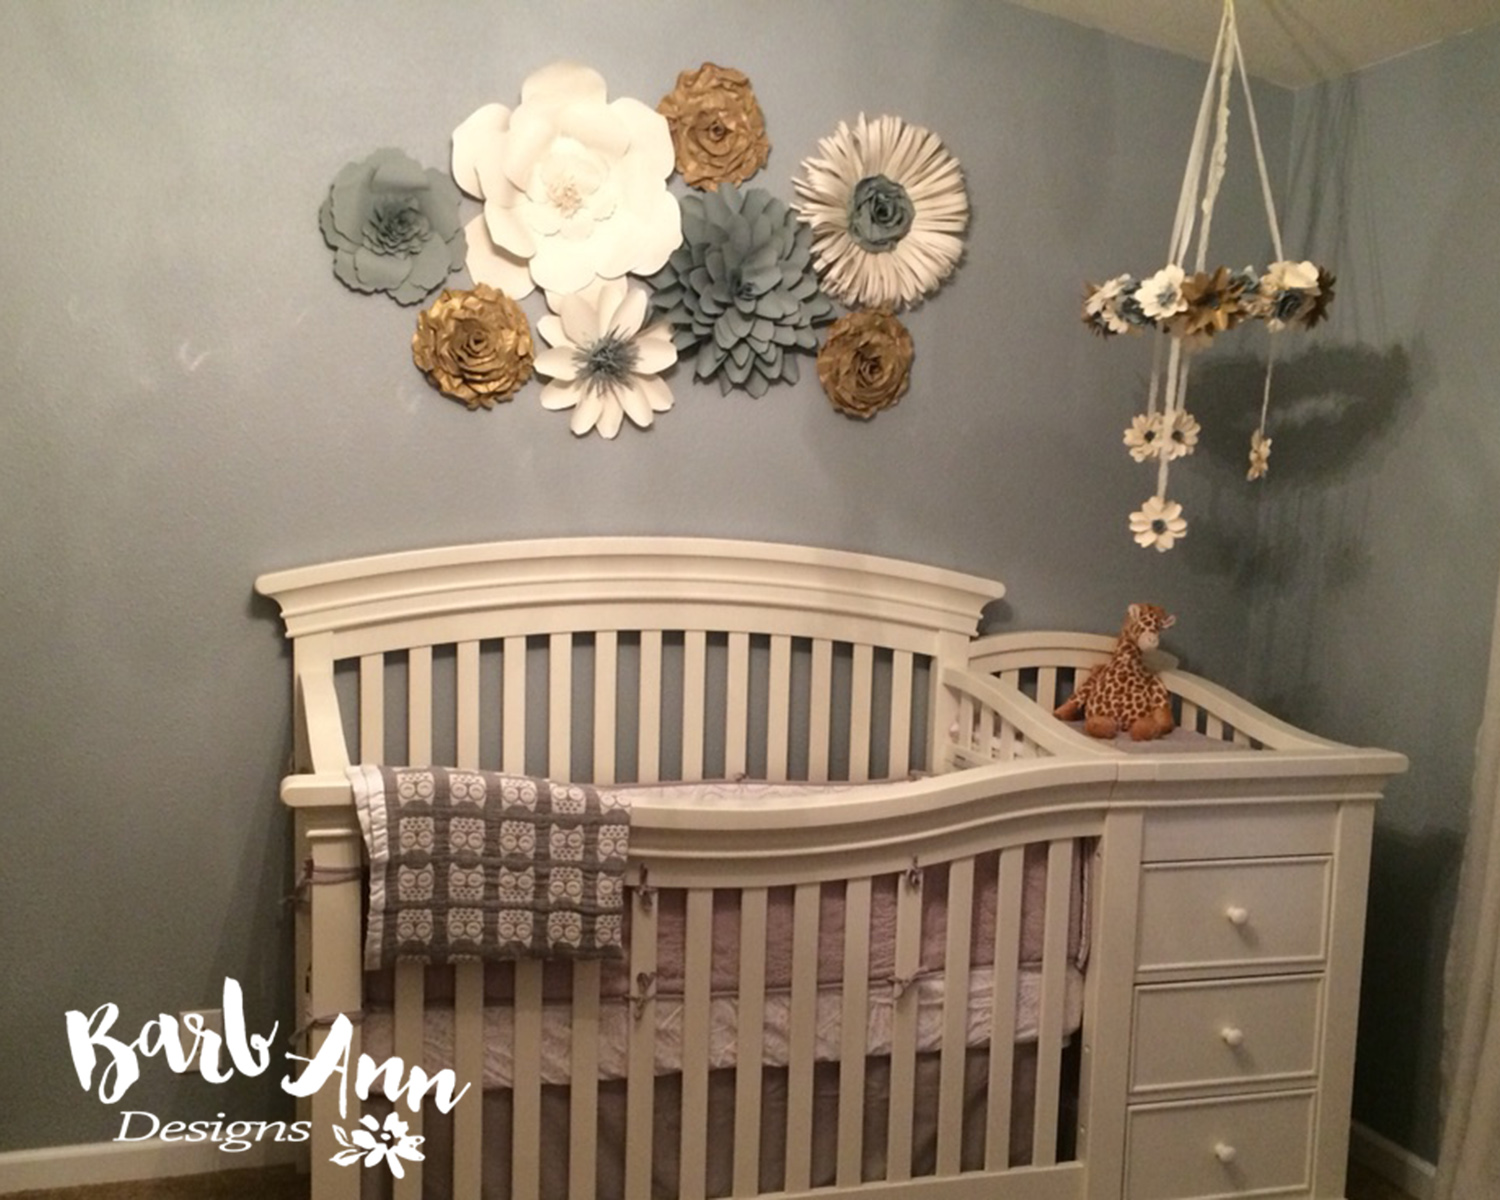 Nursery set with cream gray and gold tones barb ann designs for Above the crib decoration ideas